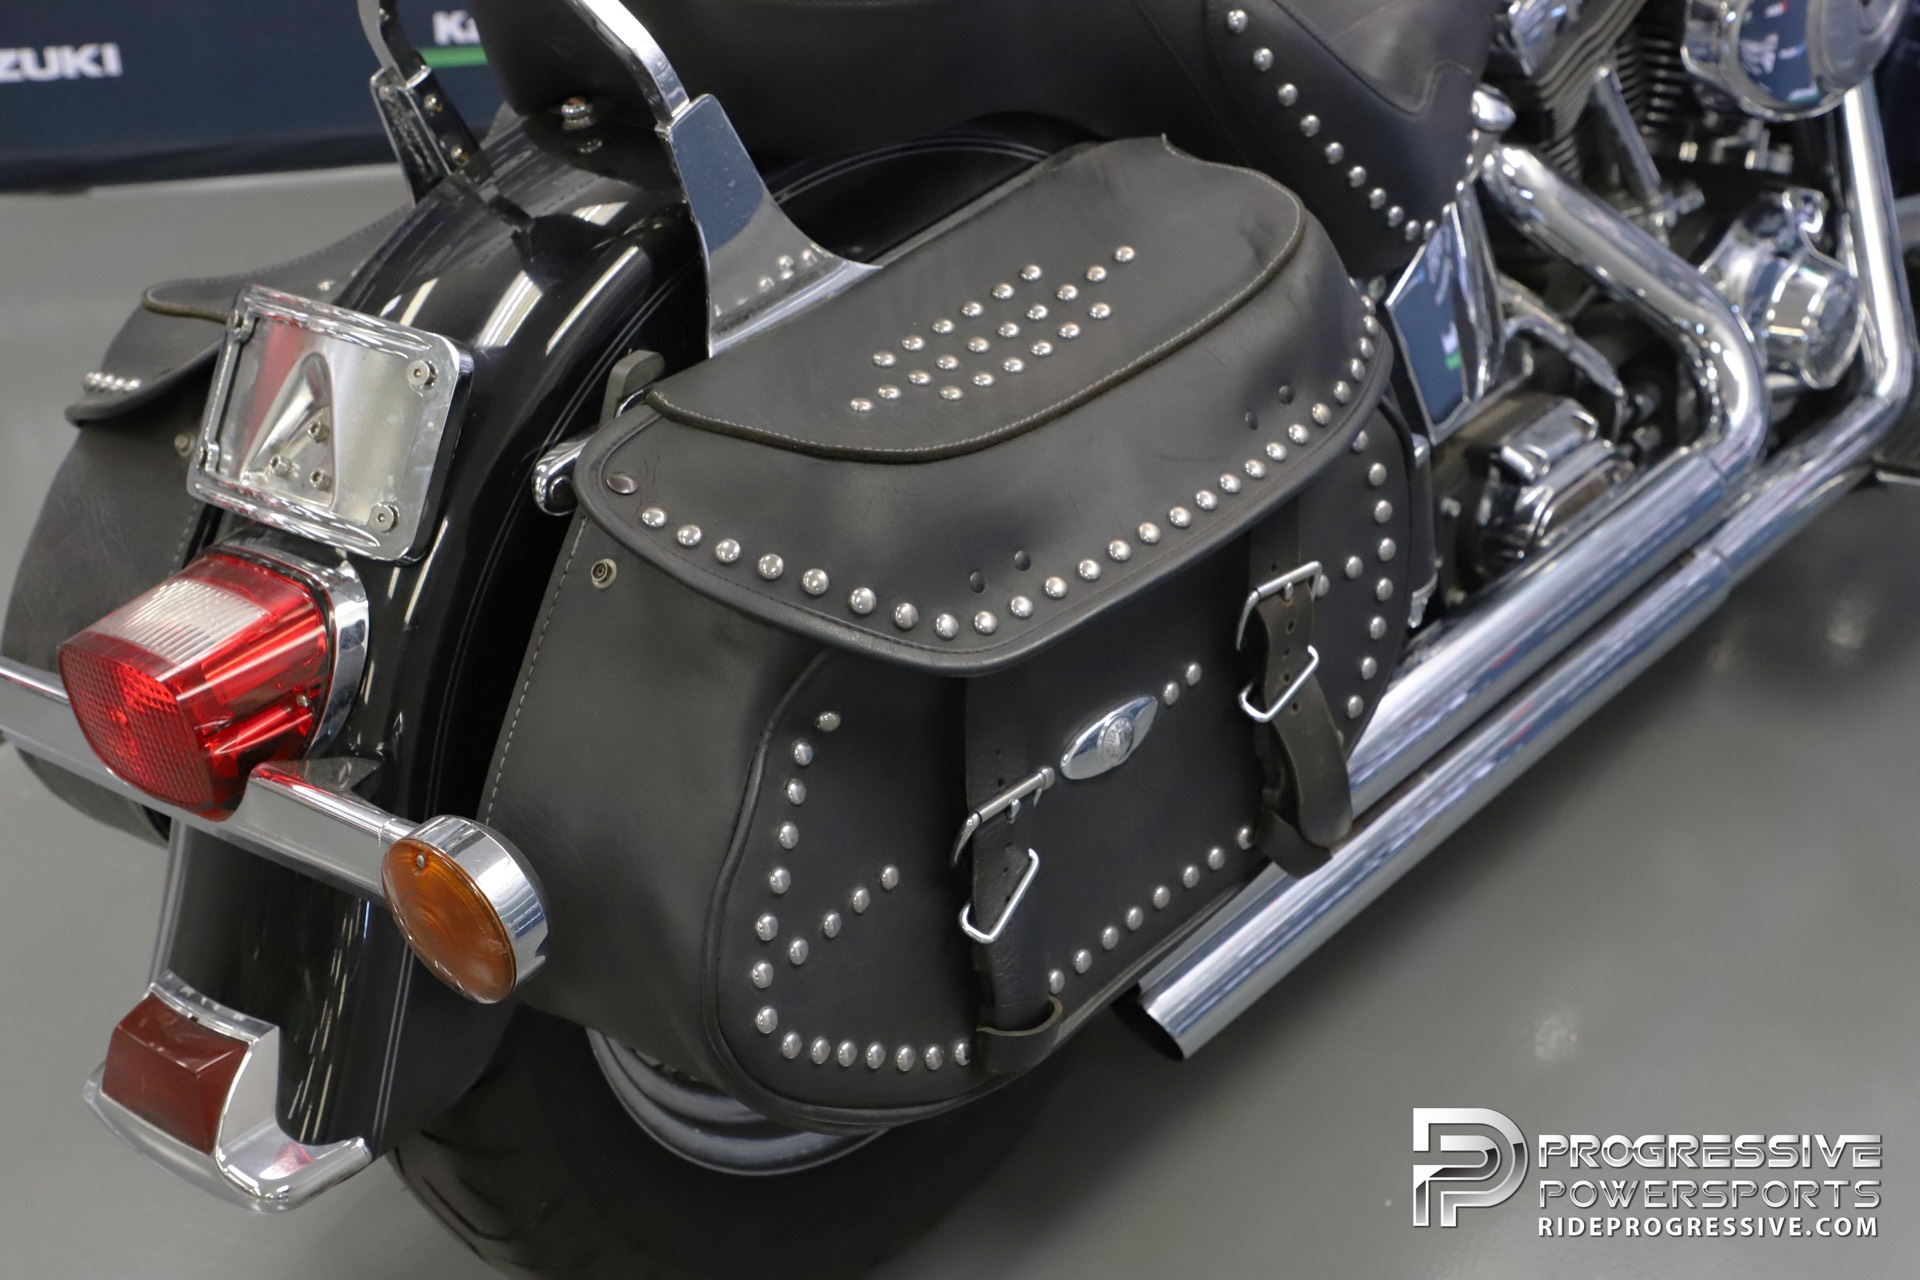 2005 Harley-Davidson HERITAGE SOFTAIL CLASSIC in Arlington, Texas - Photo 9